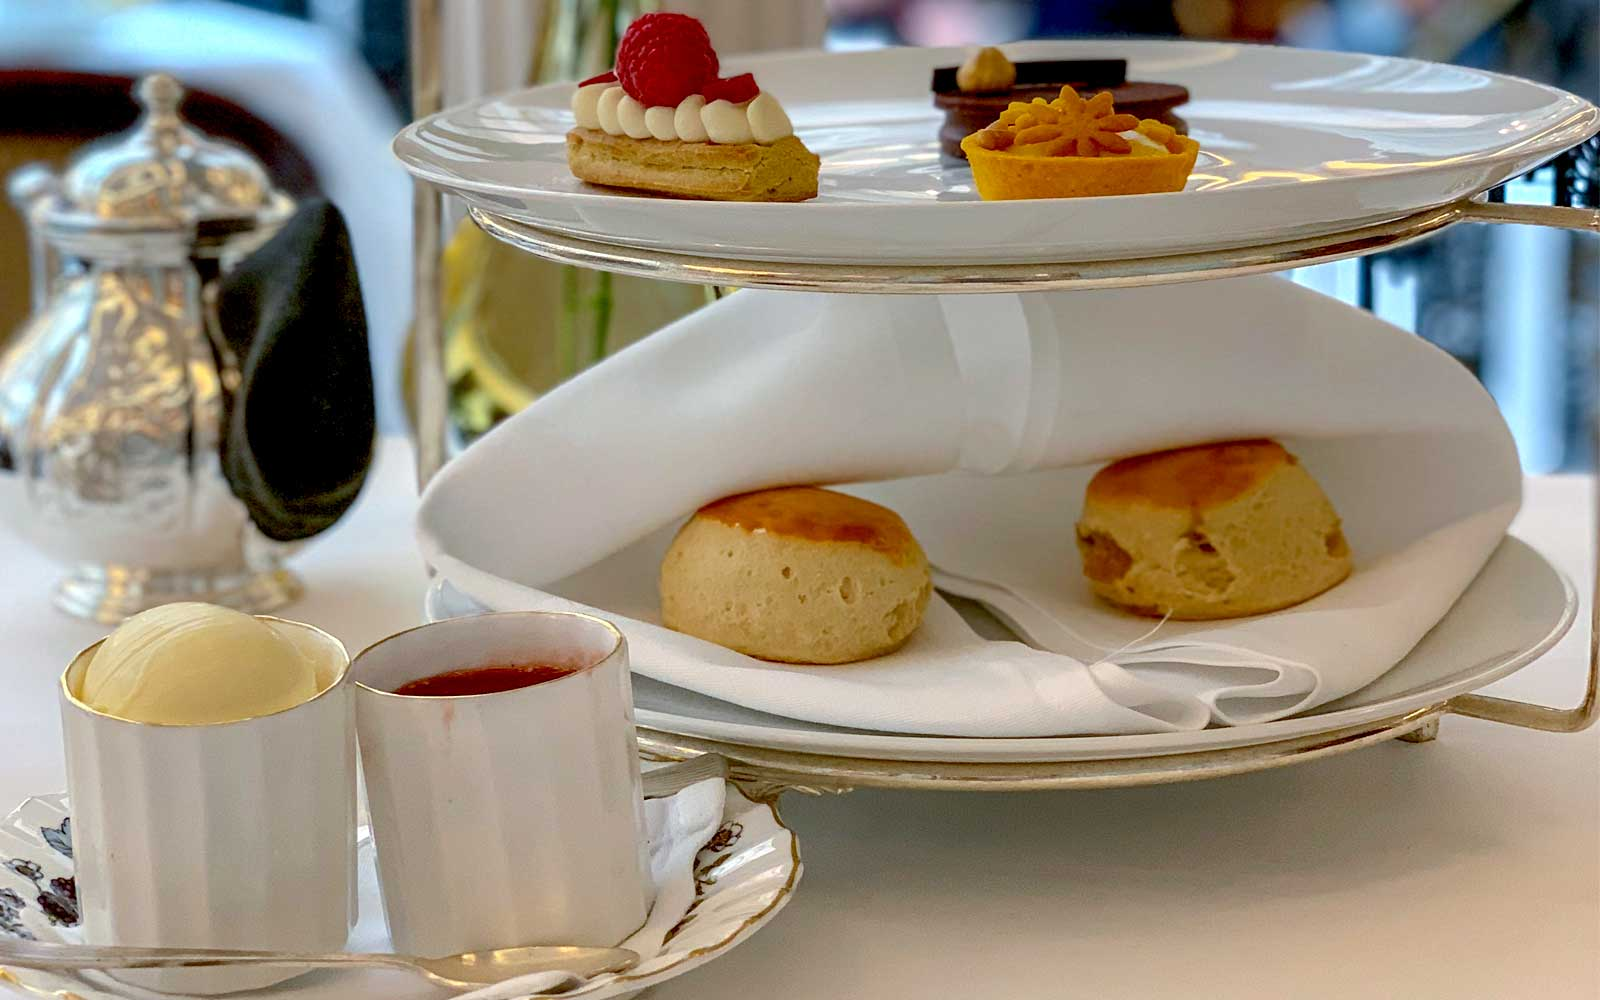 A selection of scones and pastries featured during afternoon tea.